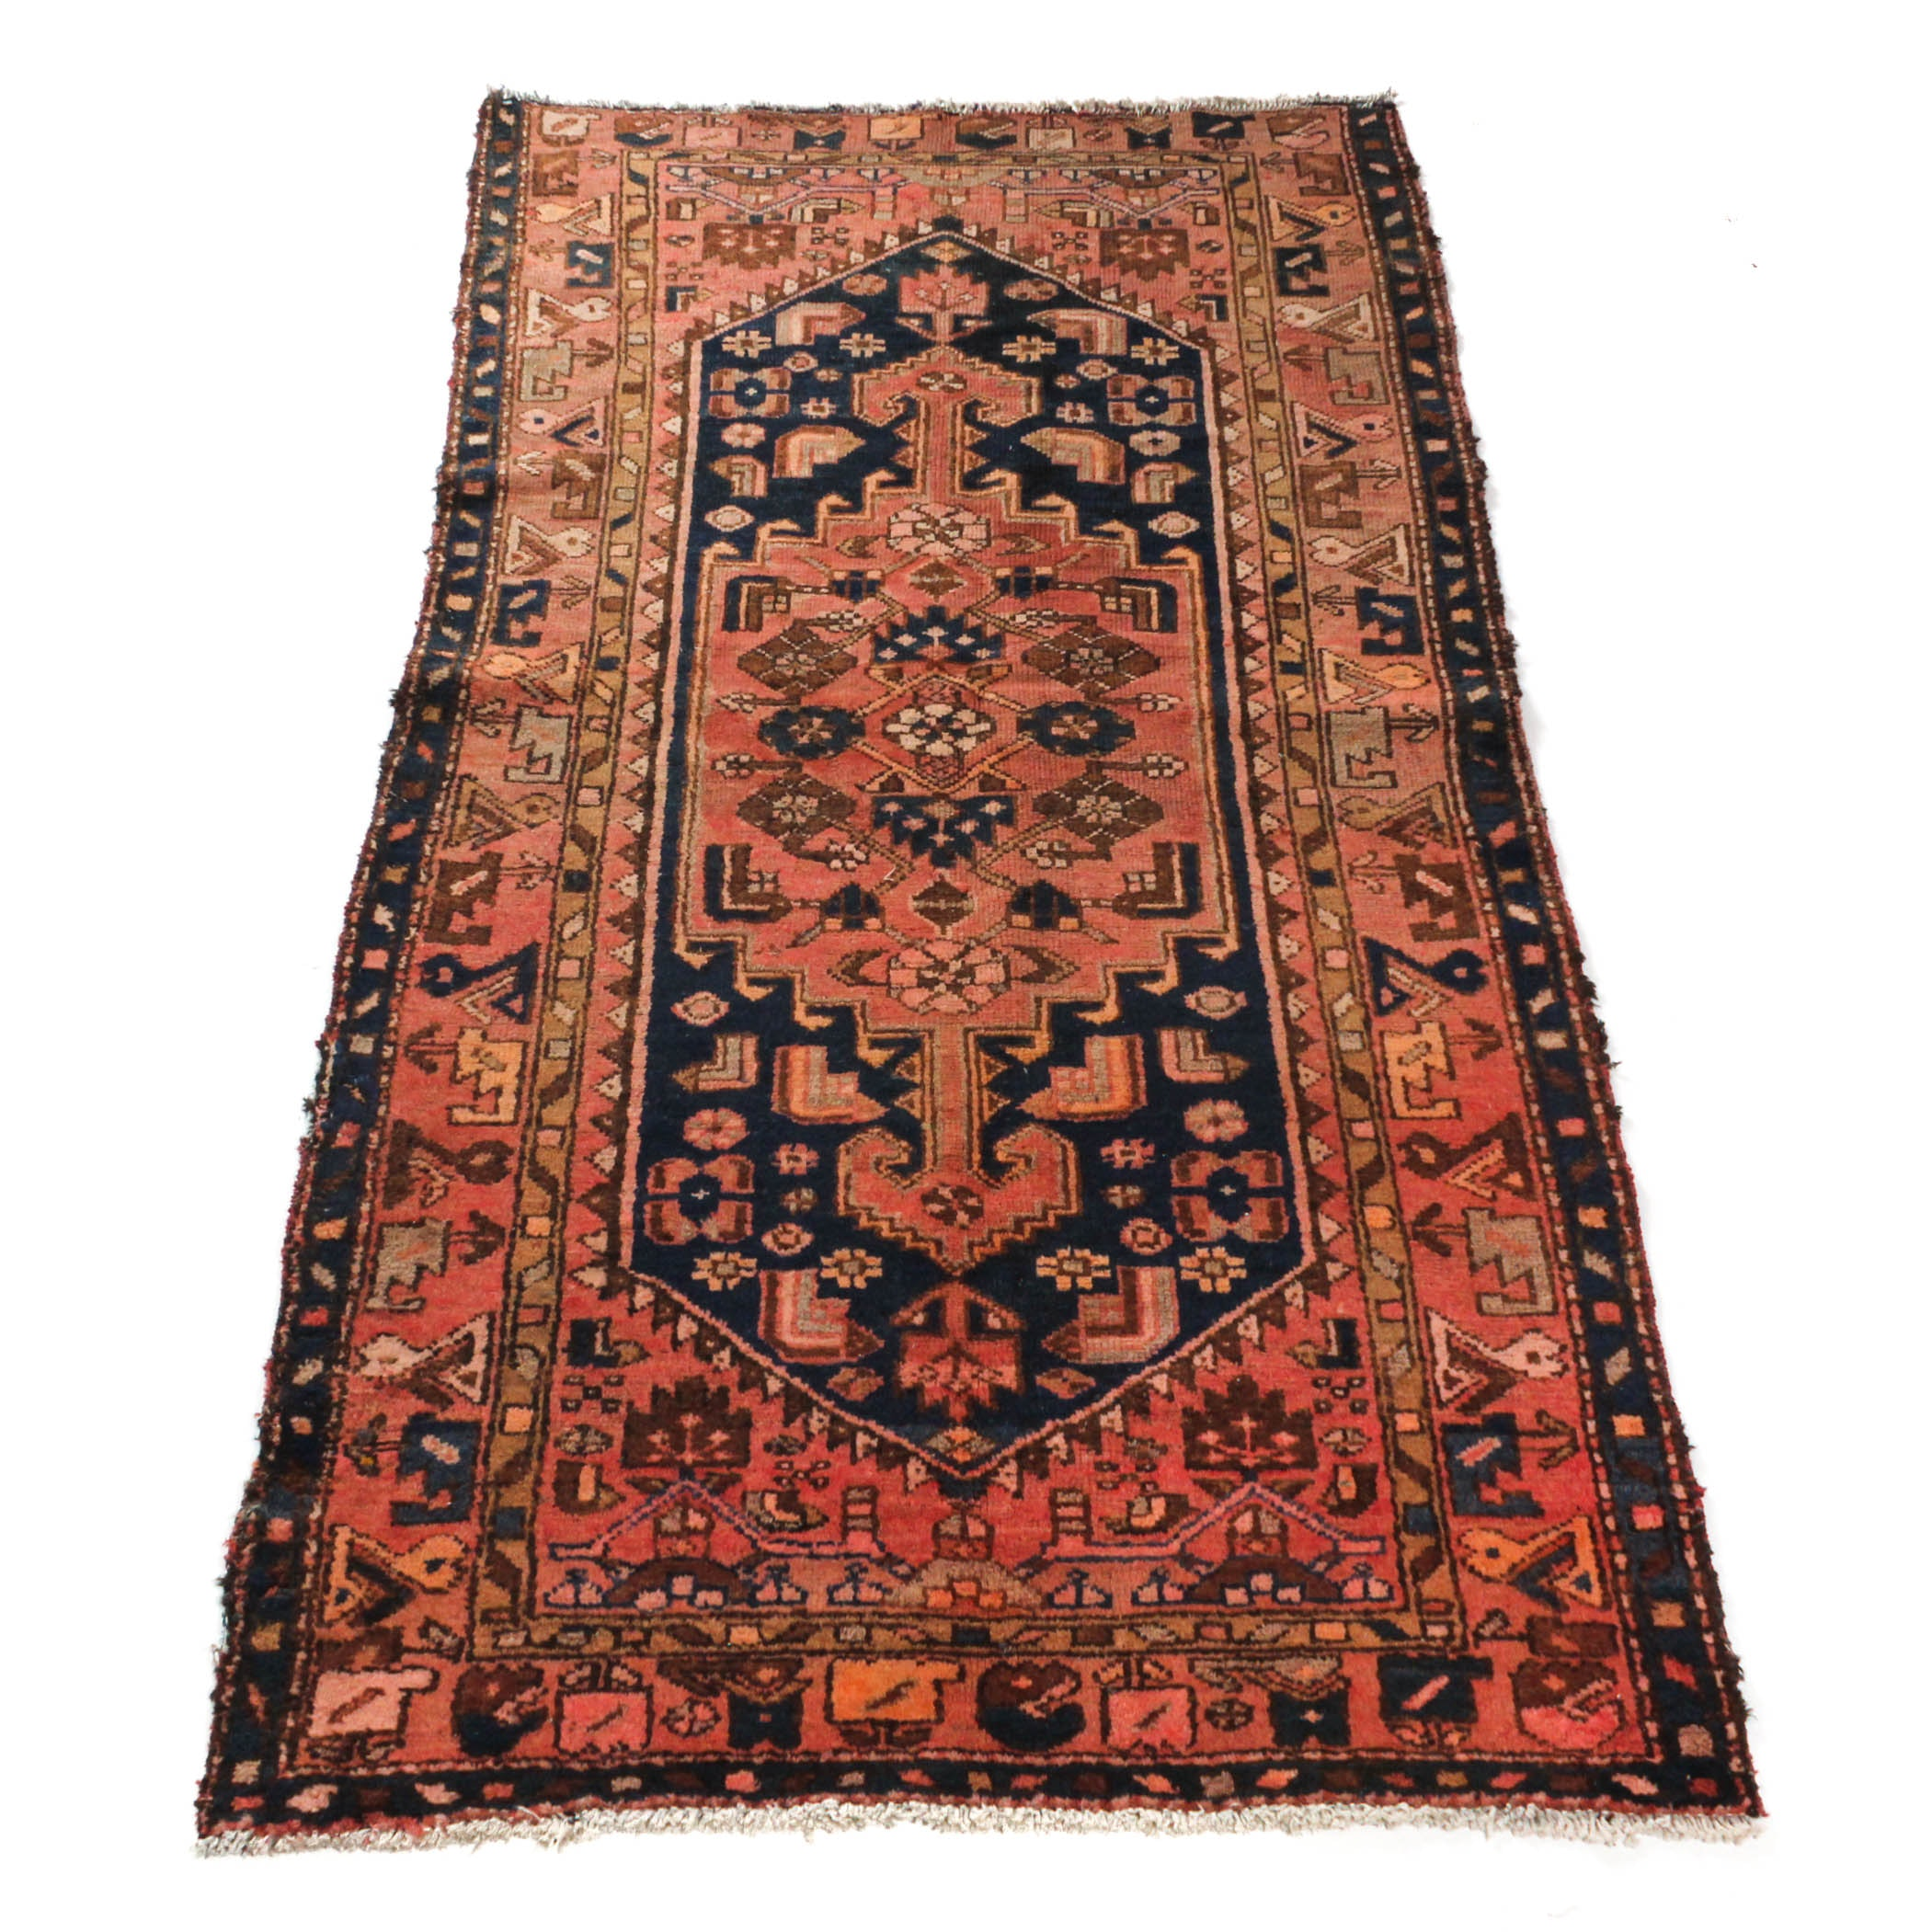 Antique Hand-Knotted Persian Zanjan Rug